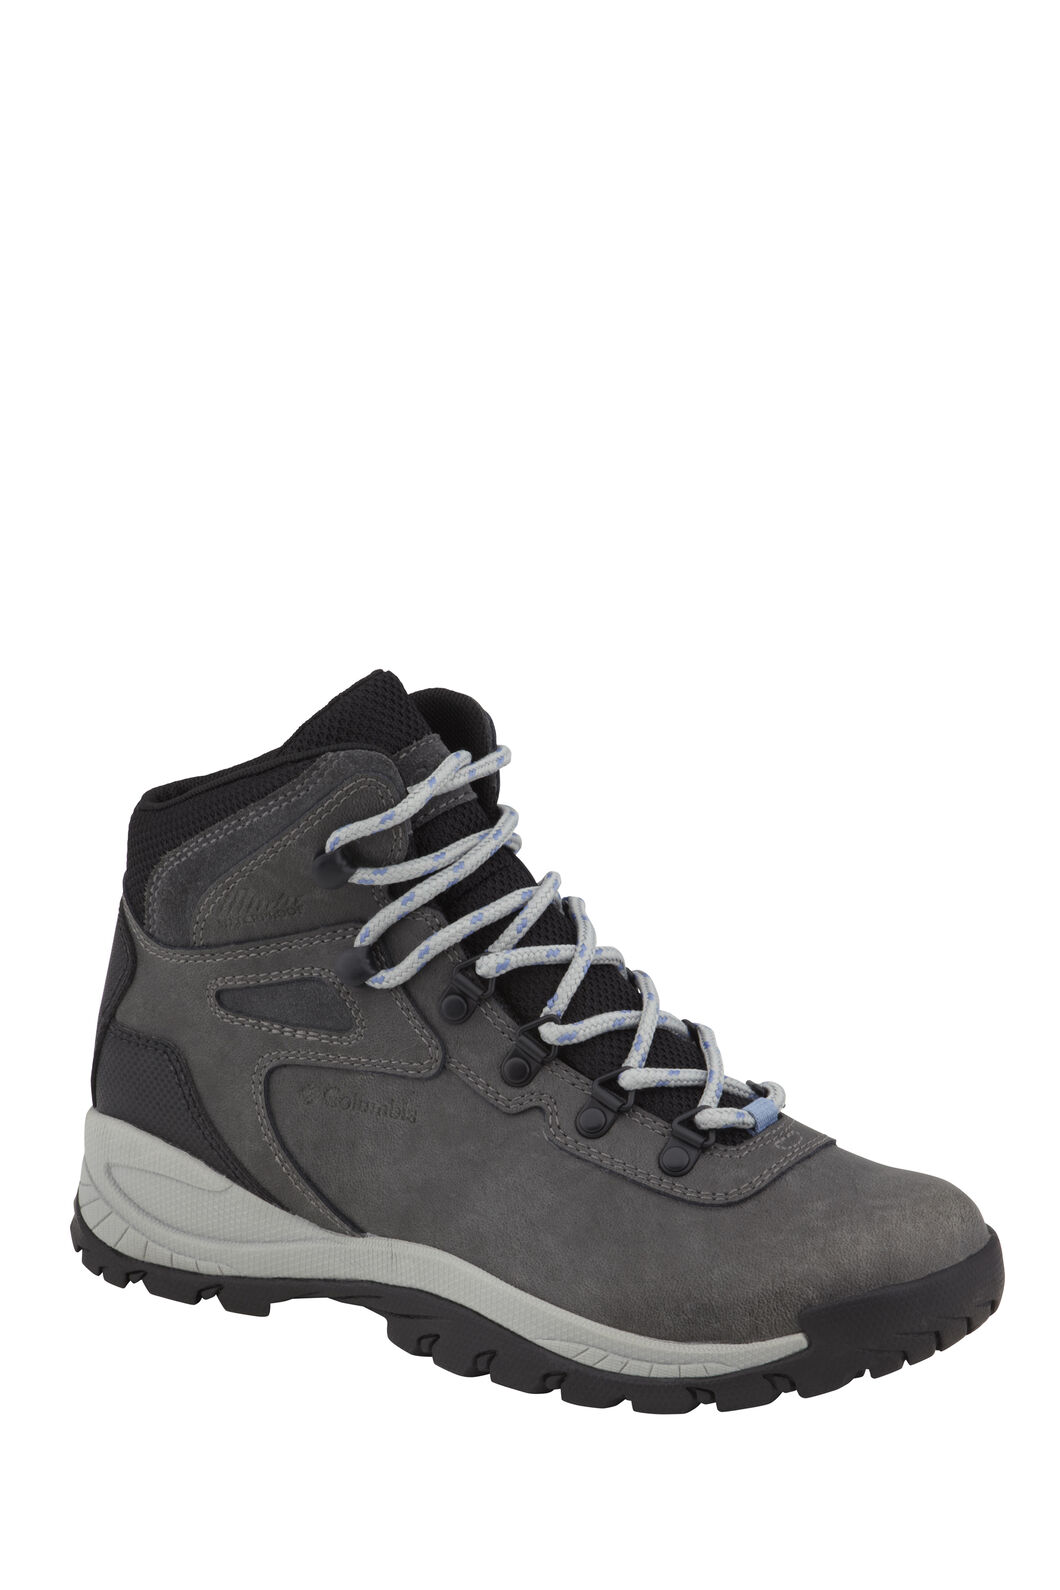 Columbia Women's Newton Ridge Plus Hiking Boots QuarryCool Wave, QUARRY/COOL WAVE, hi-res